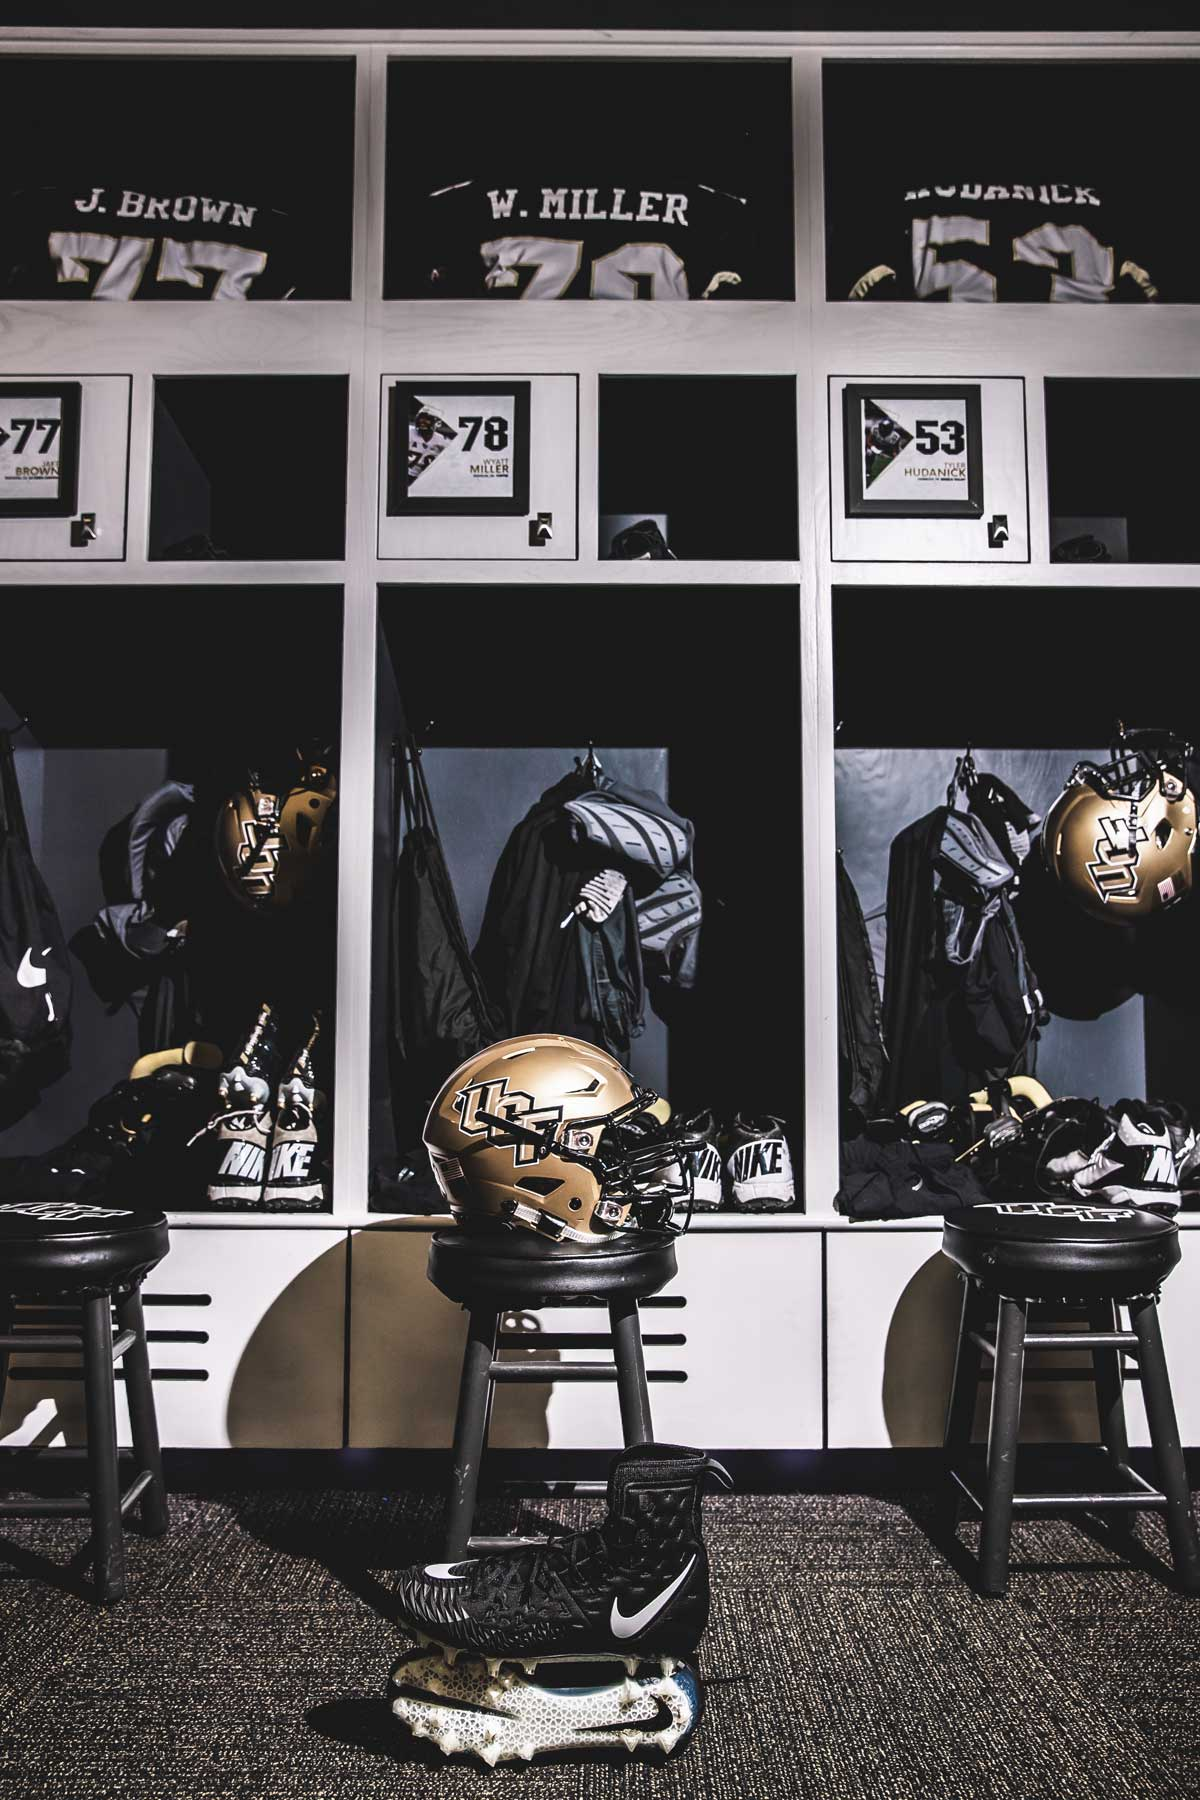 rows of lockers with a gold UCF helmet on a stool